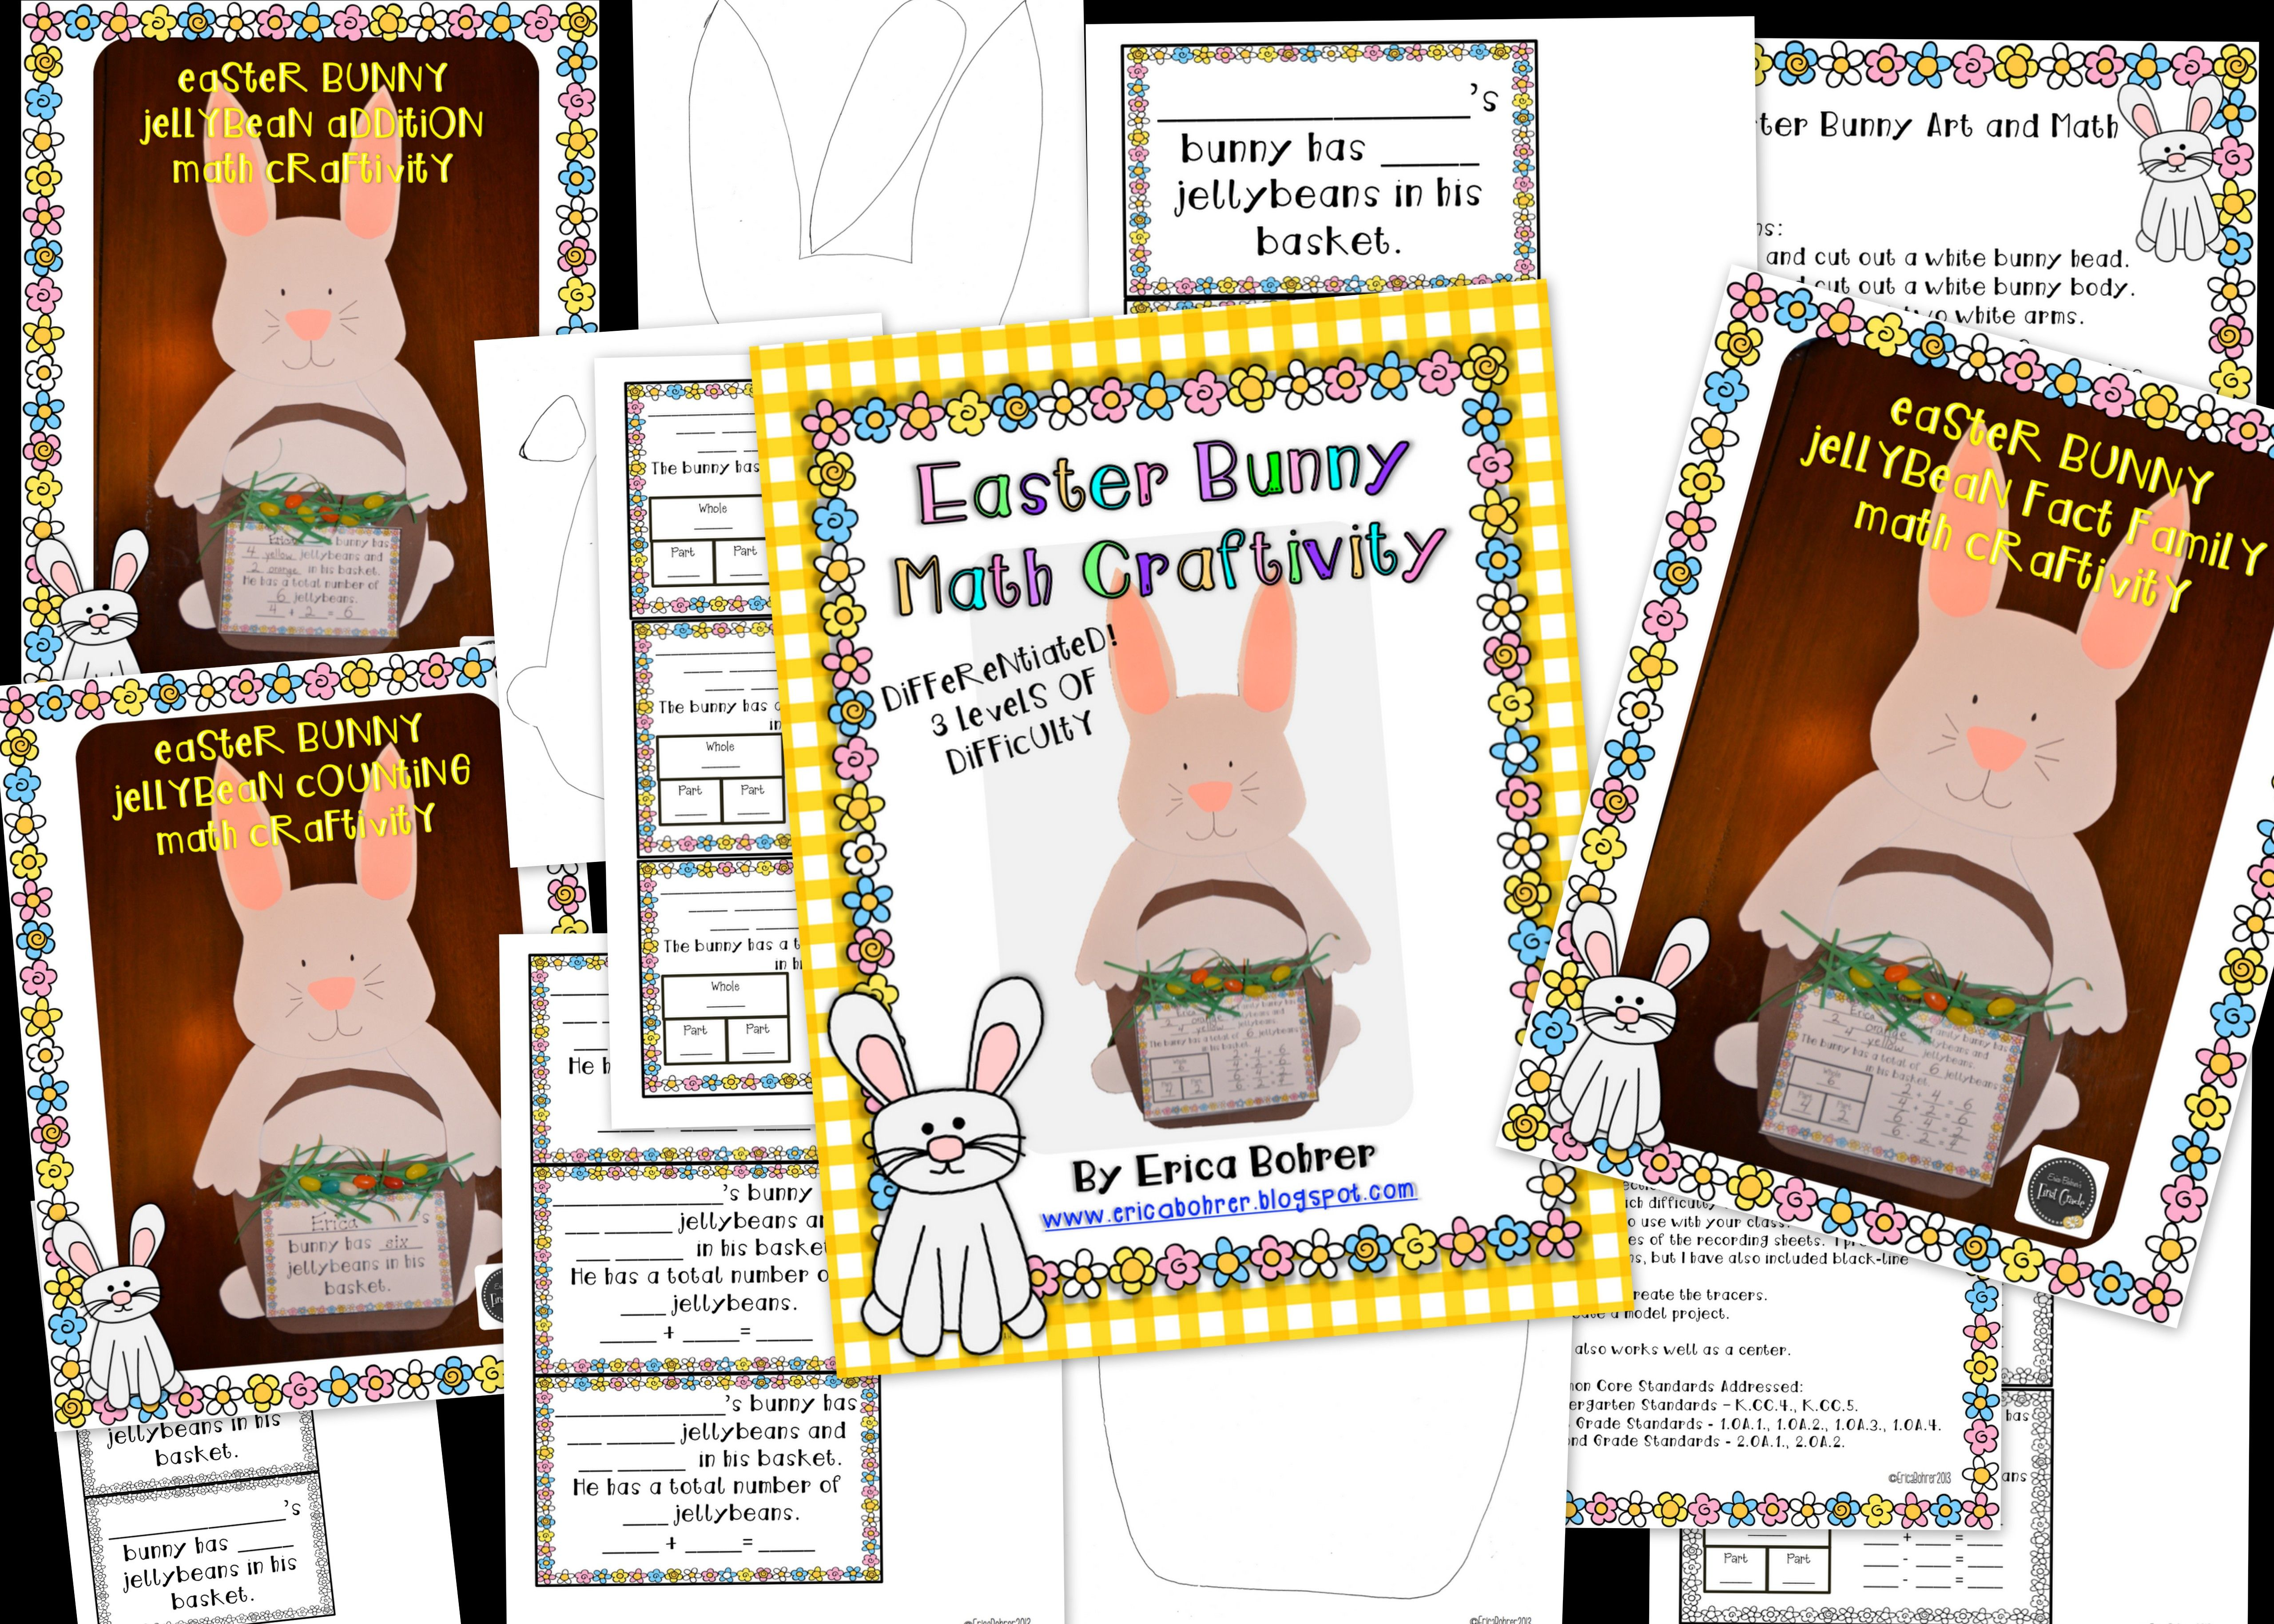 Easter Bunny Math Craftivity Differentiated